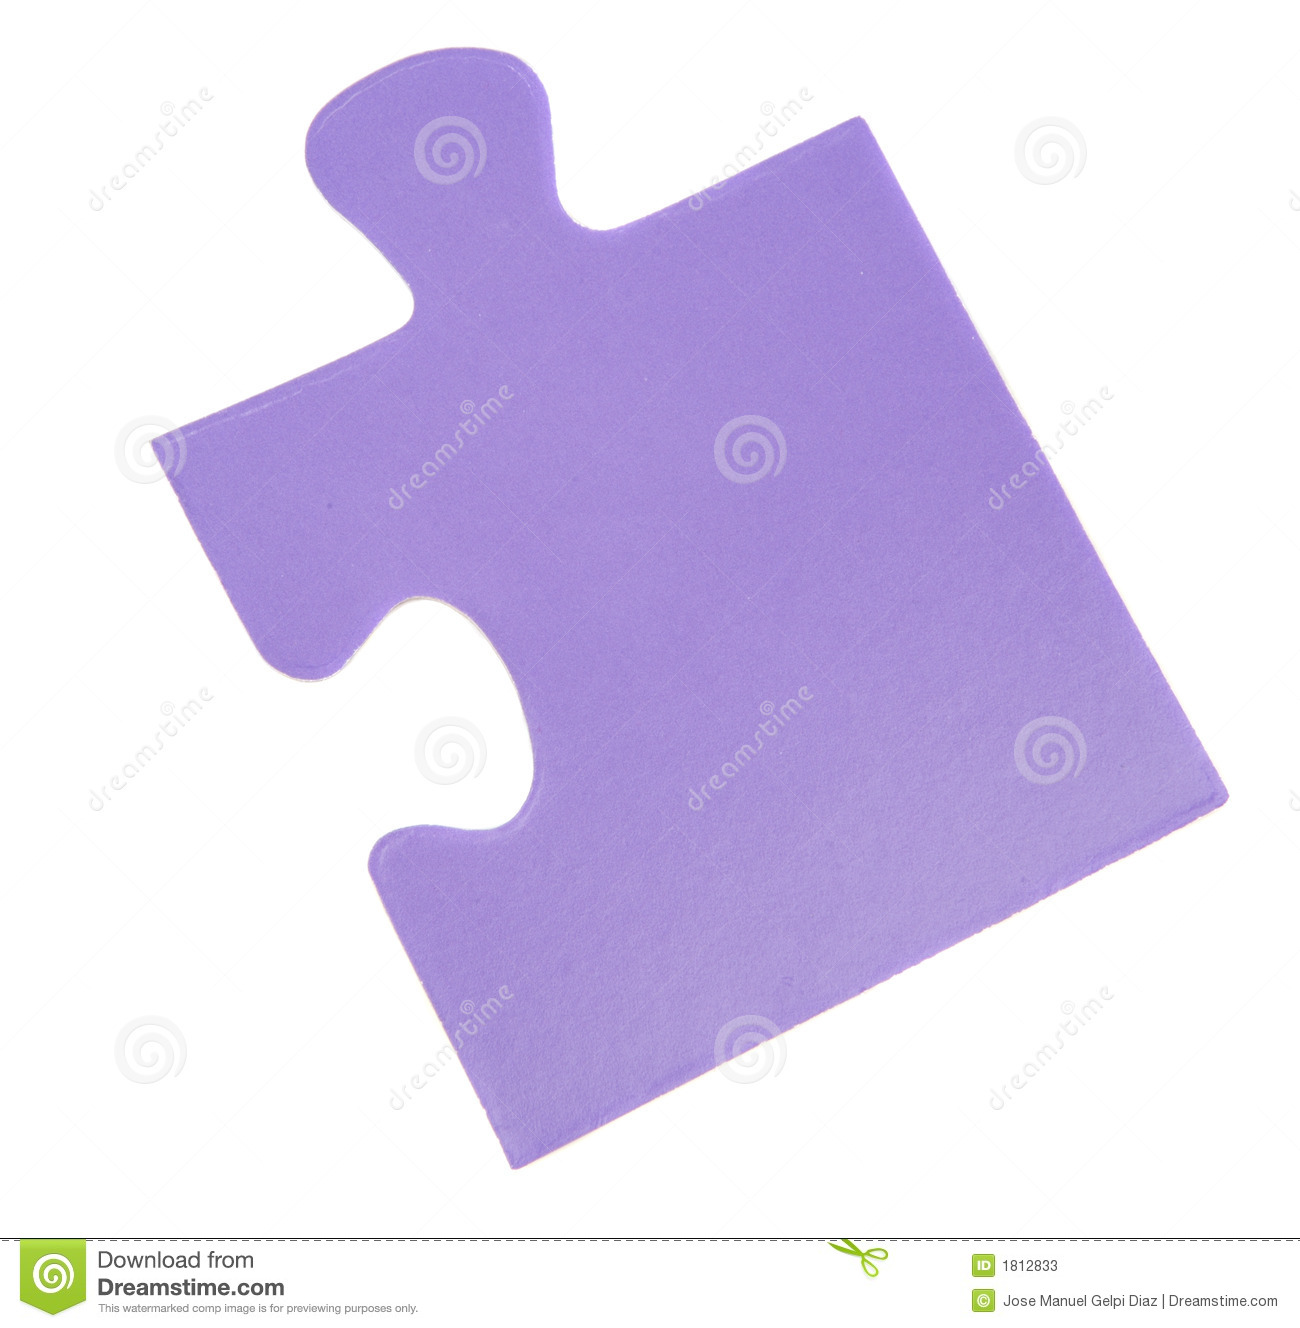 Piece Of A Puzzle Stock Photos - Image: 1812833